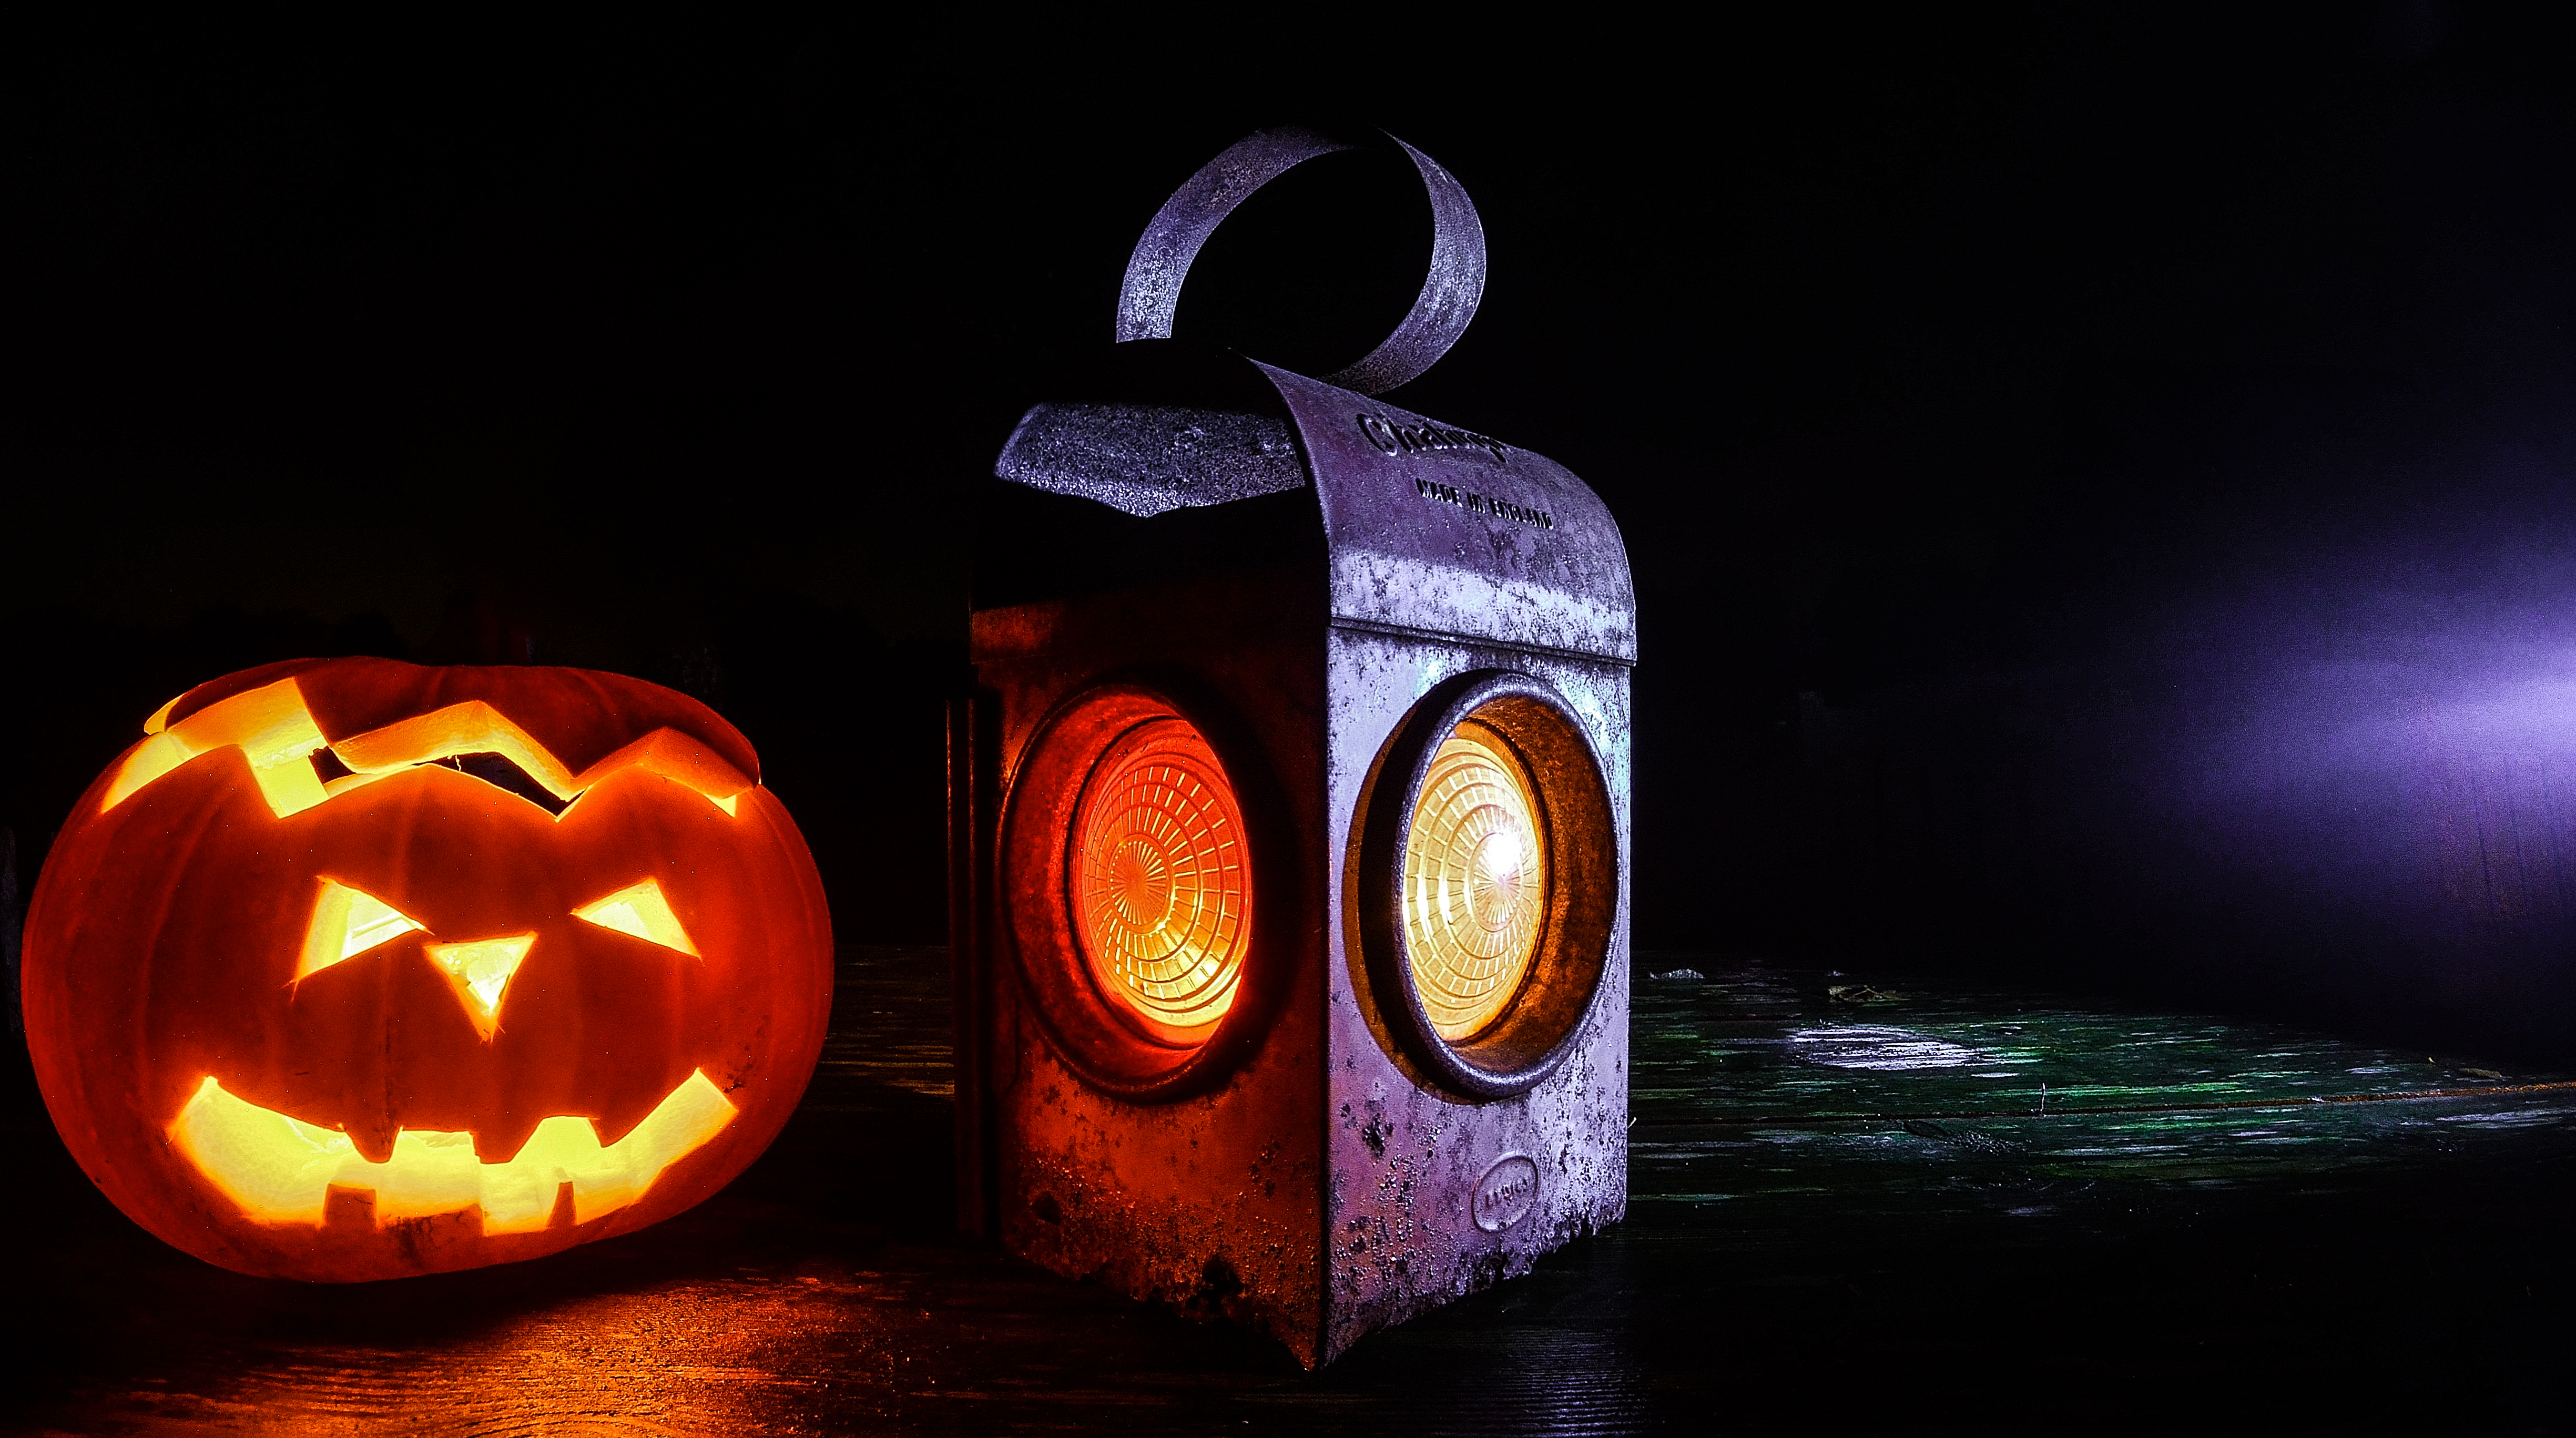 Glowing lantern and jack o lantern